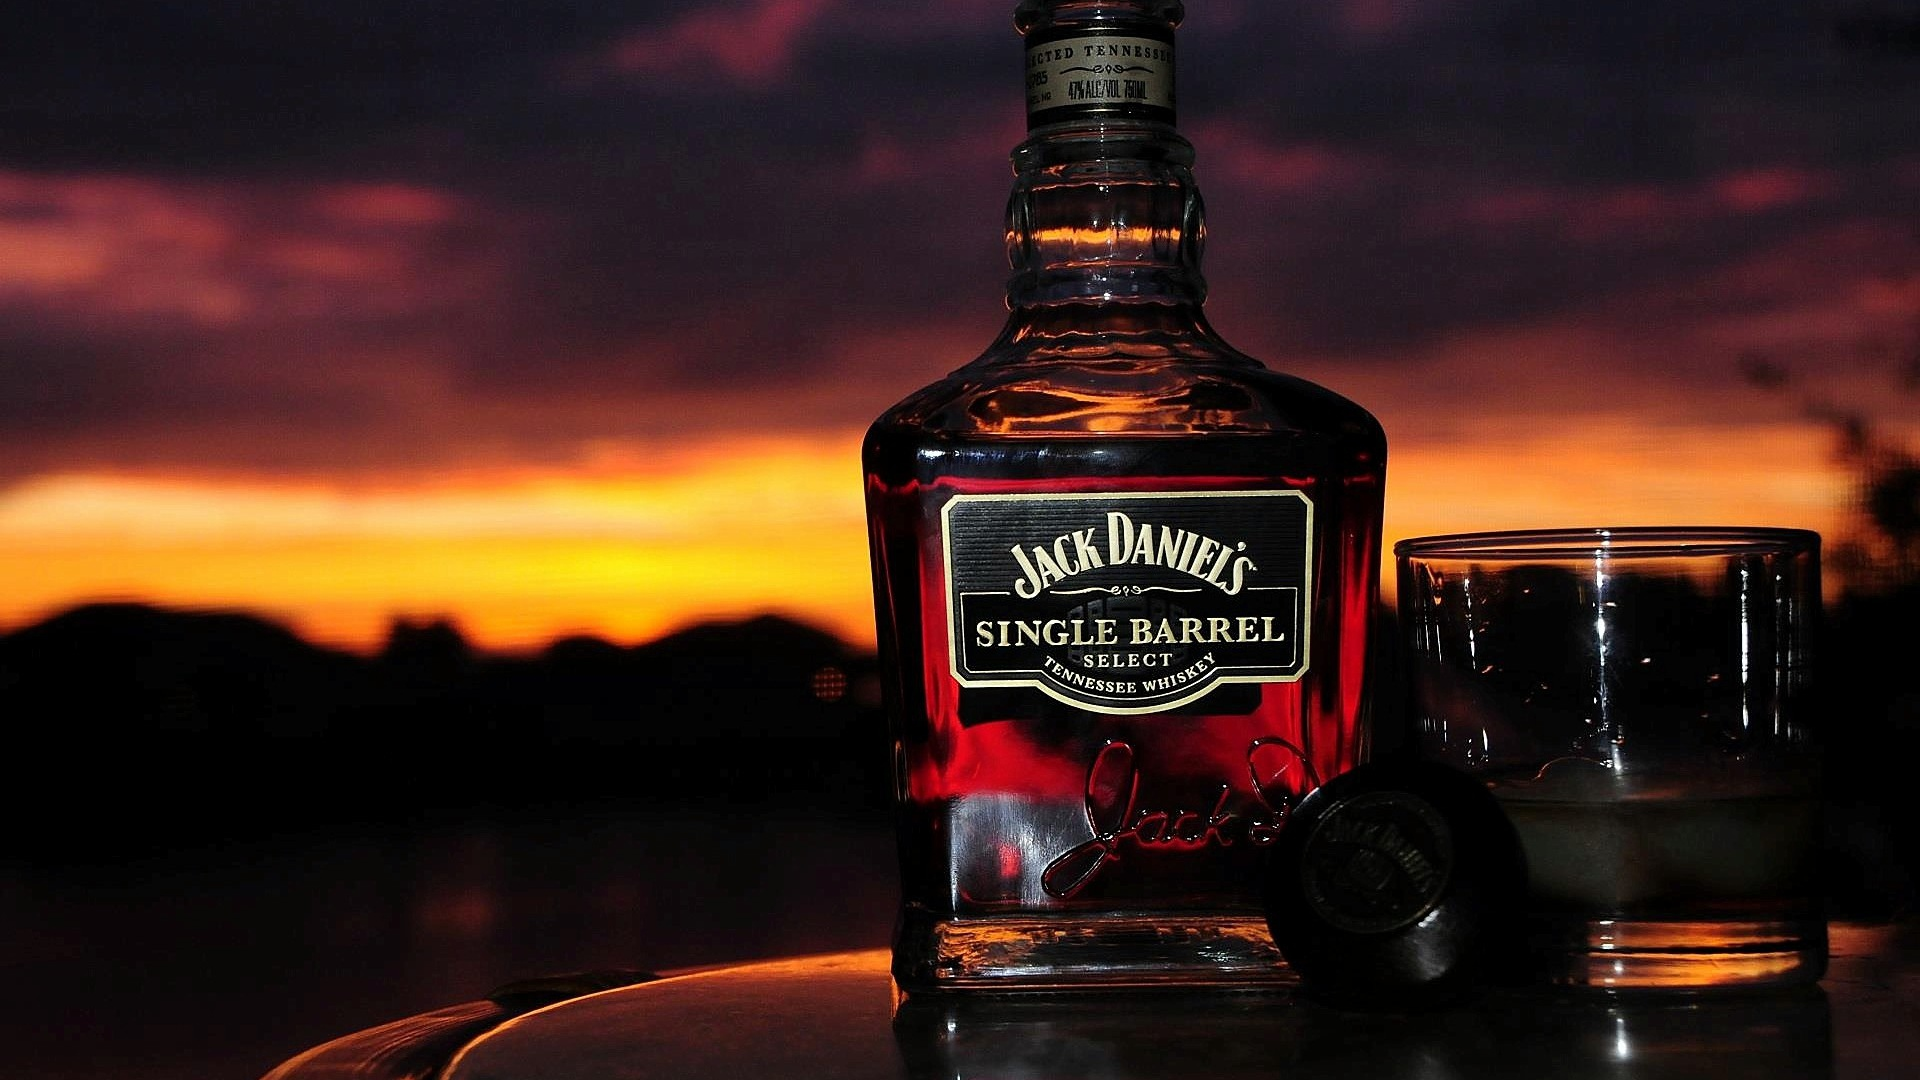 Jack daniels full hd wallpaper and background image 1920x1080 products jack daniels wallpaper voltagebd Images